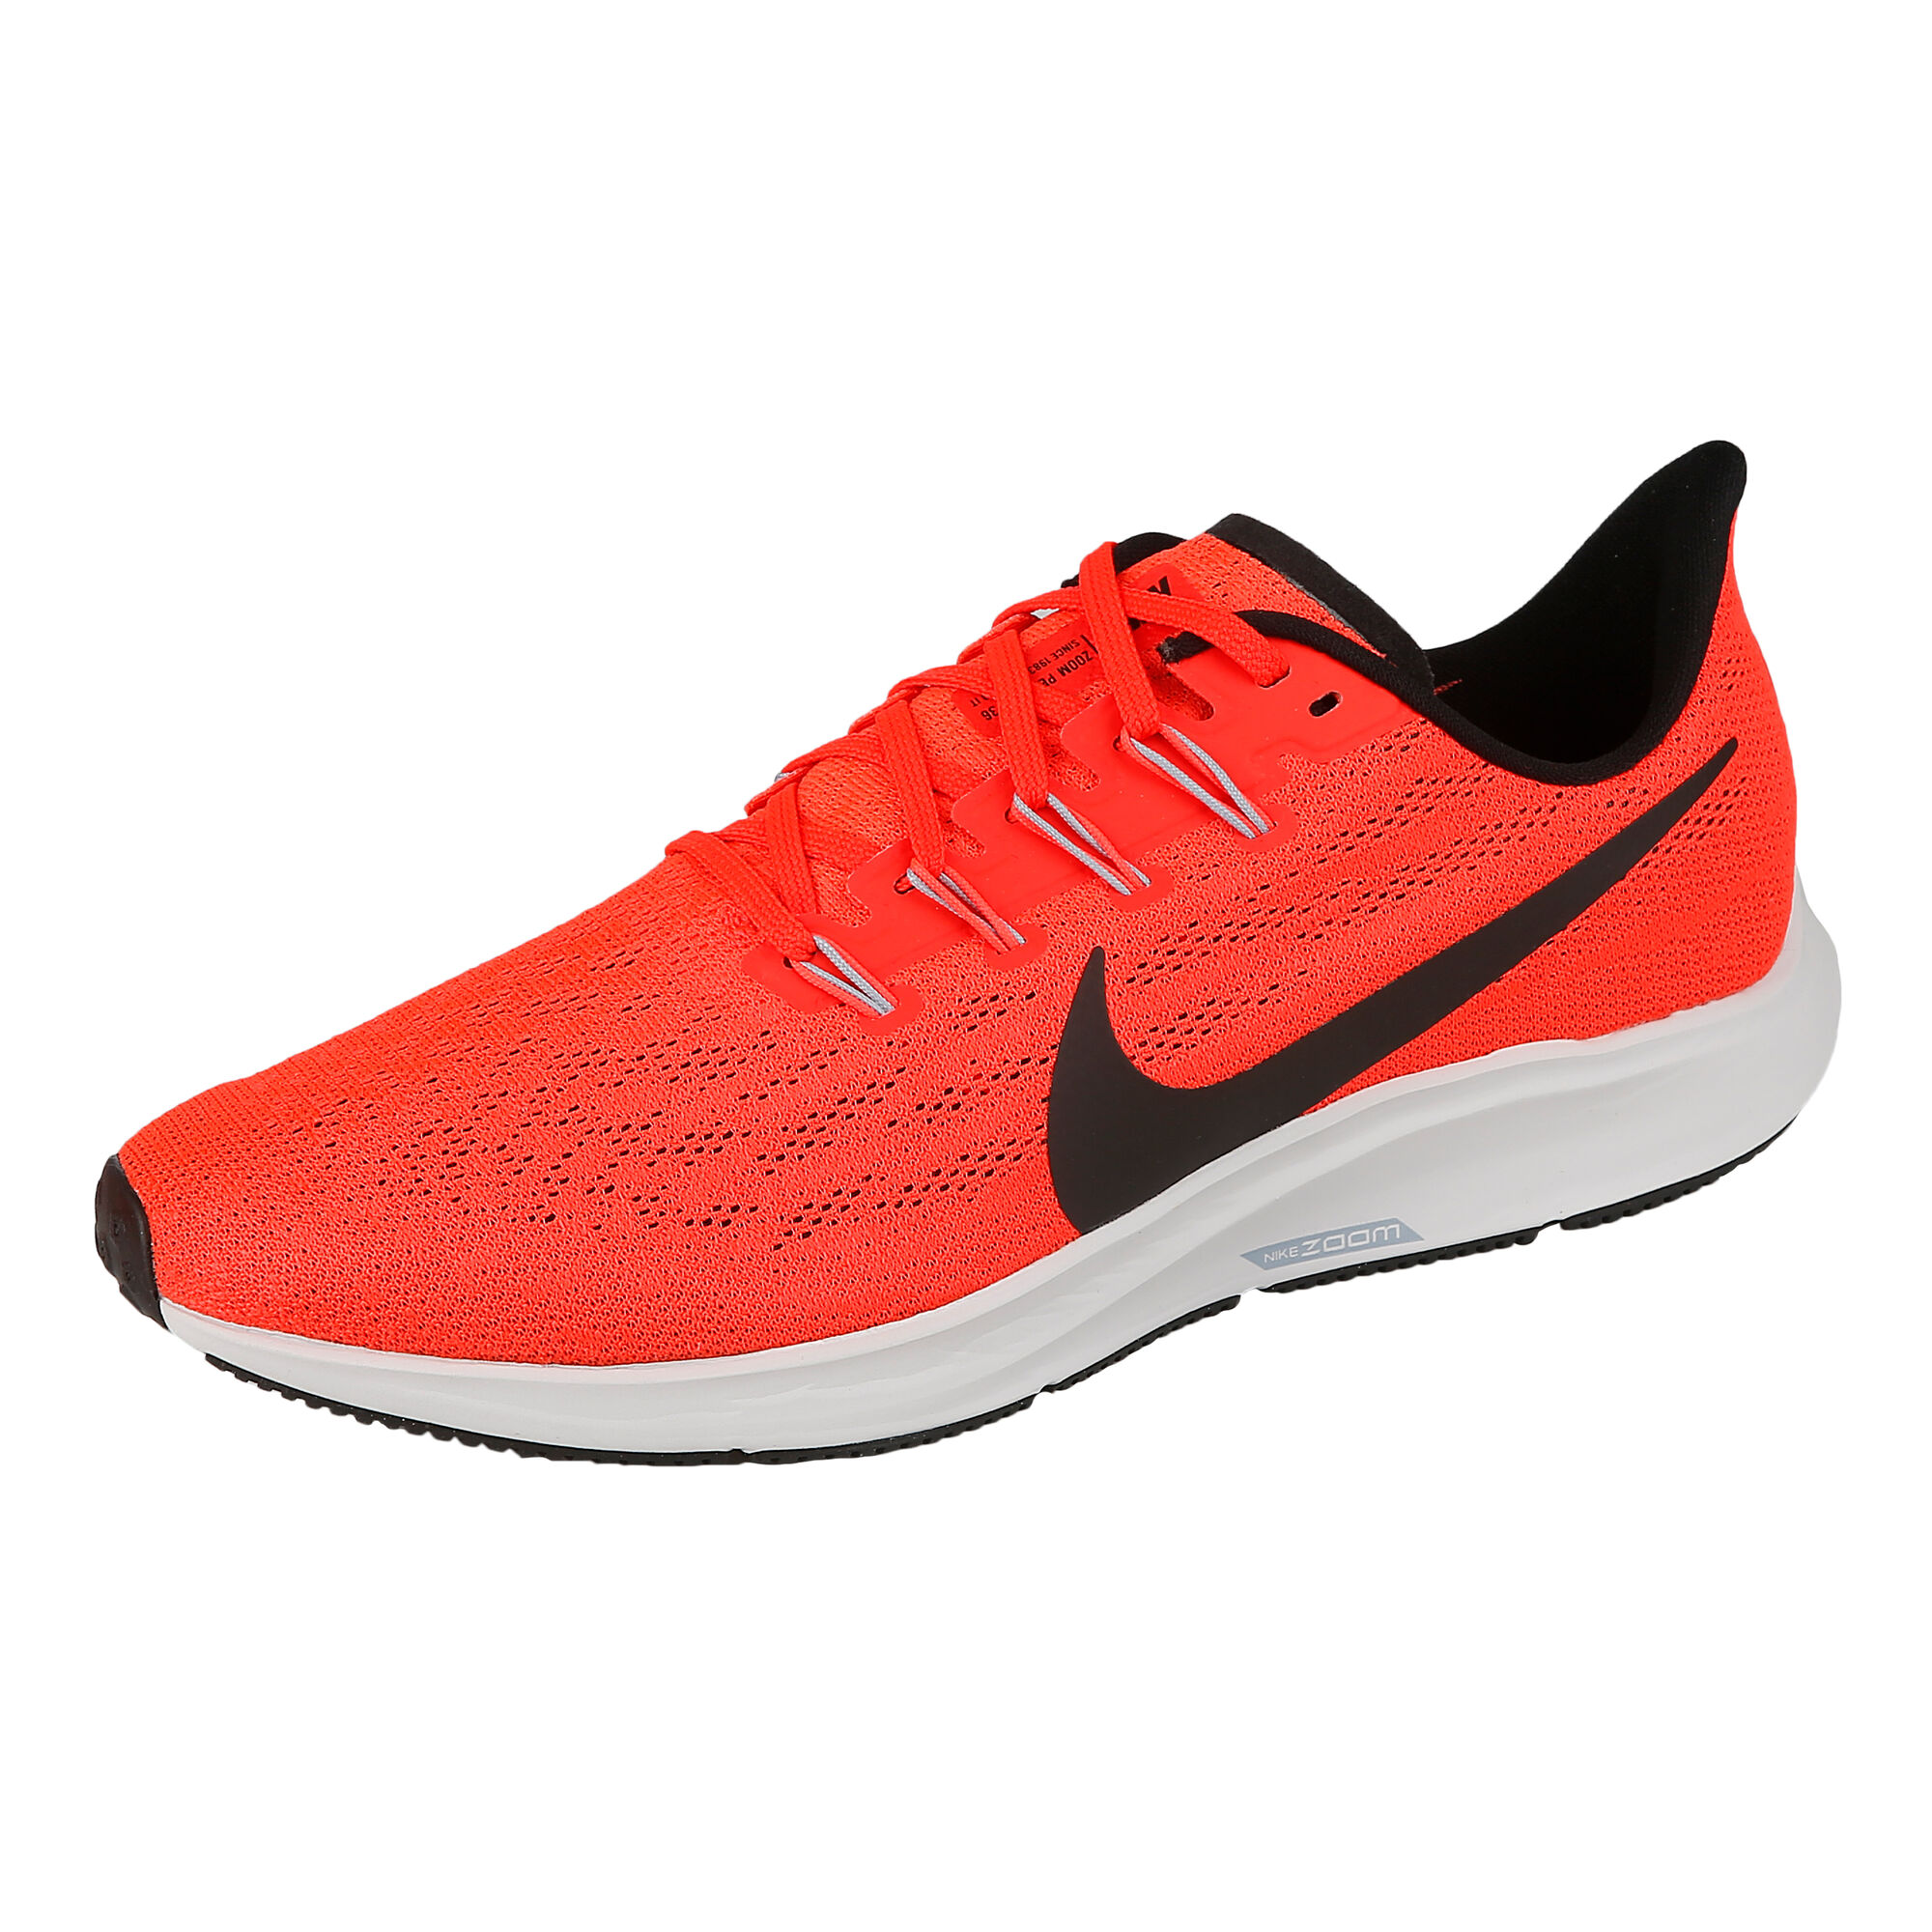 quality design de569 395ff buy Nike Pegasus 36 Neutral Running Shoe Men - Red, Black ...